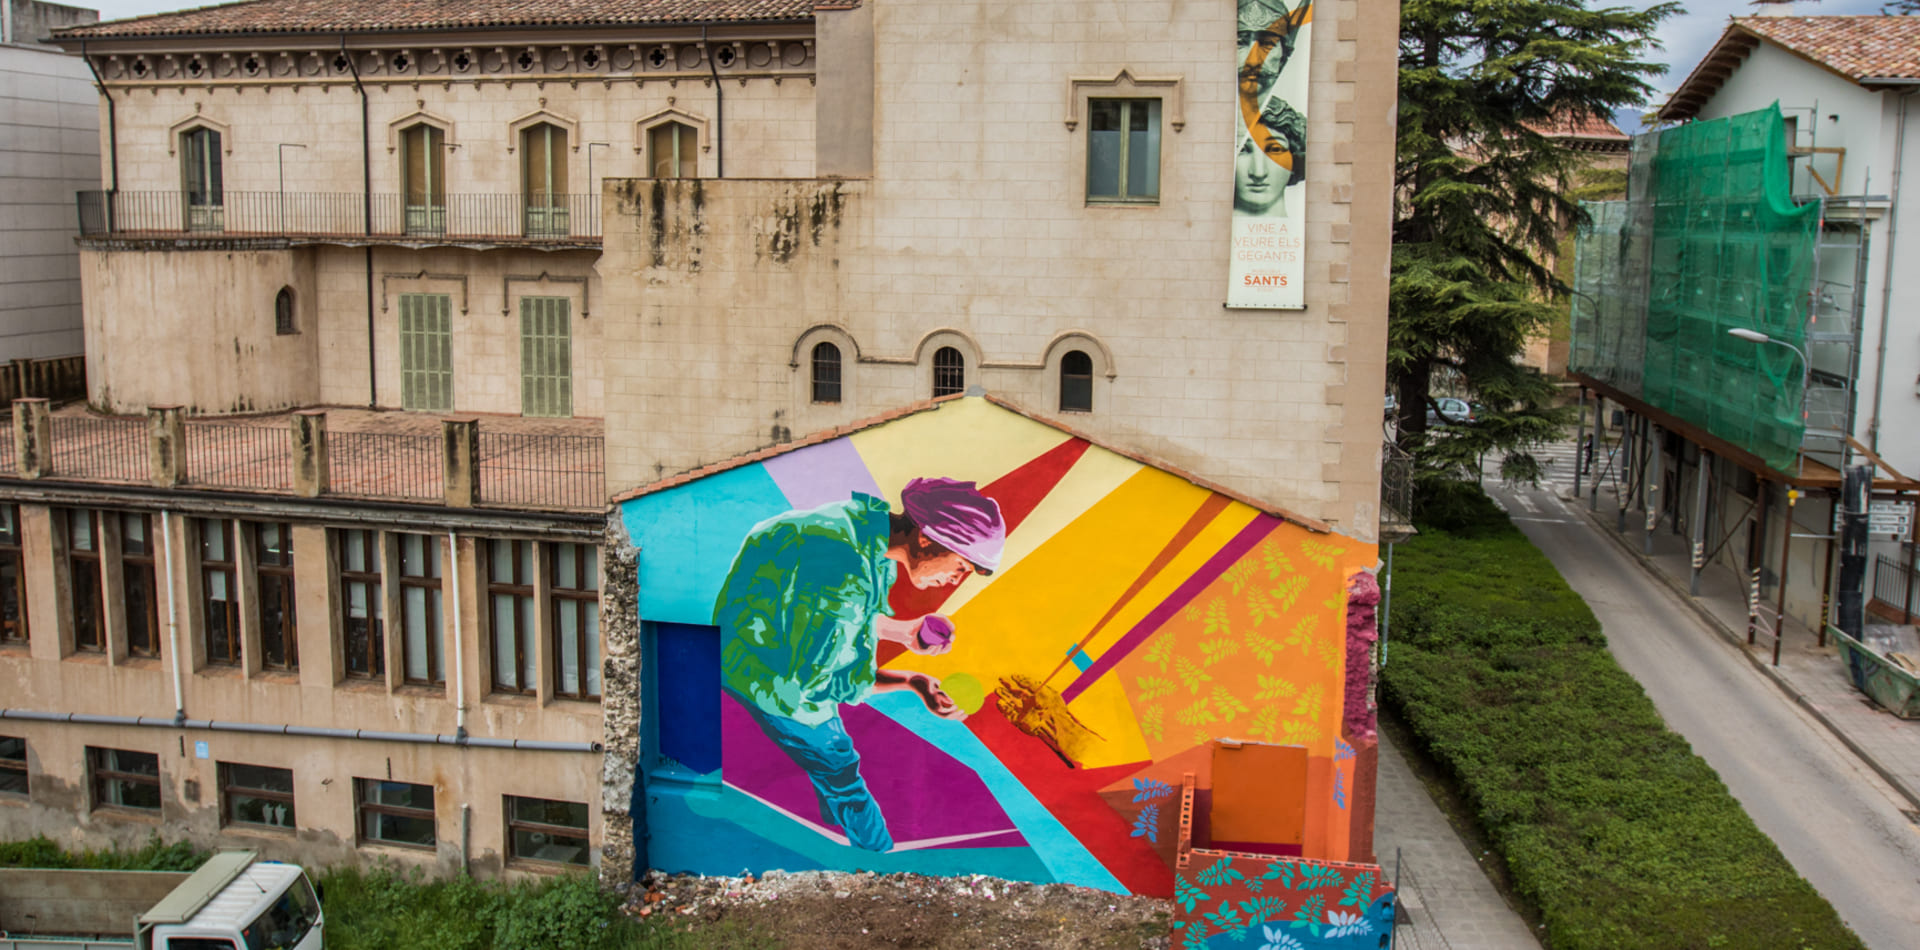 Womart mural by the artist Btoy, Olot, 2018